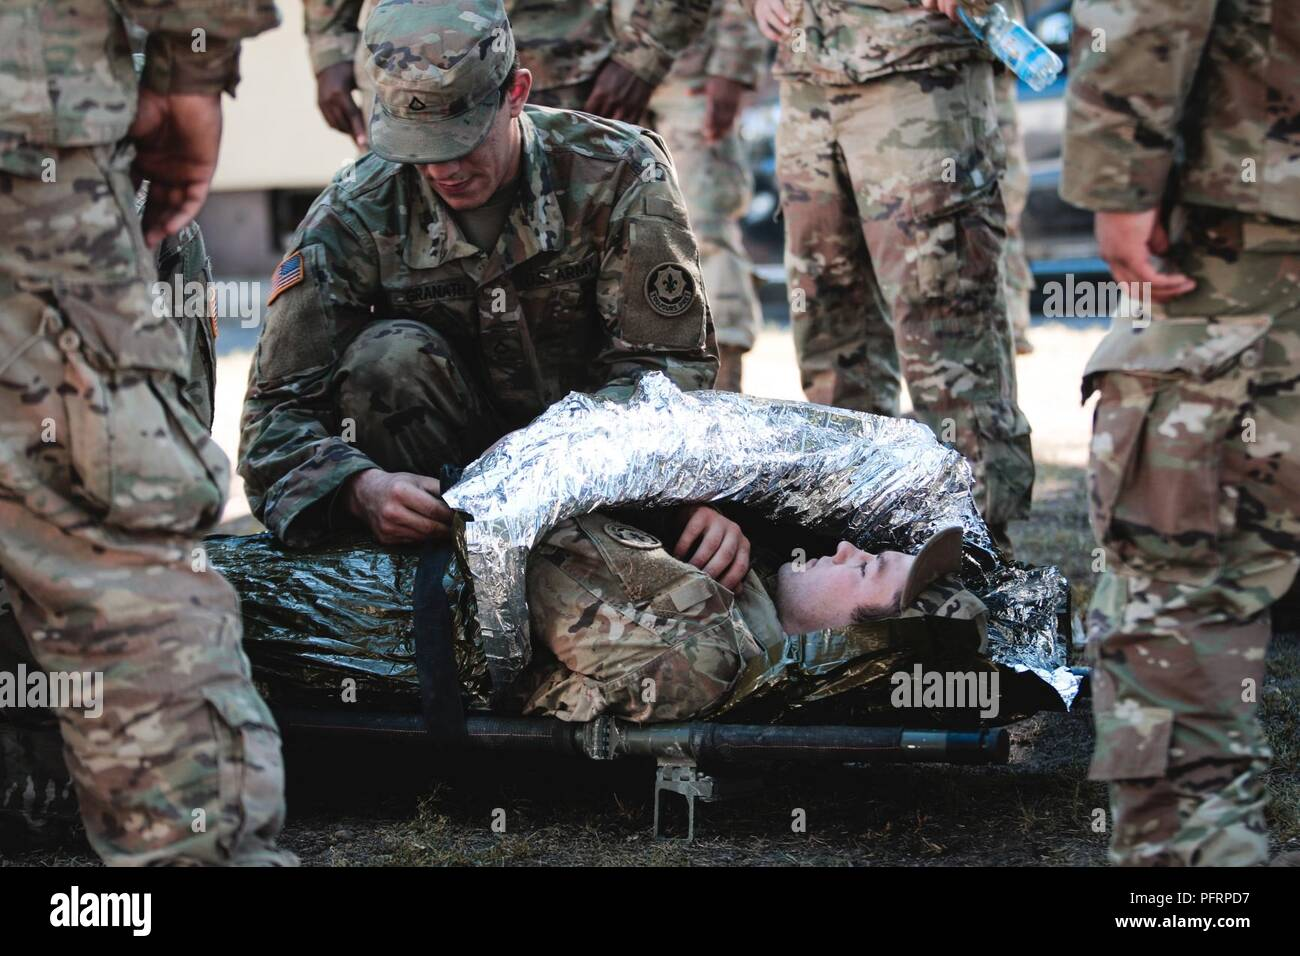 Pfc. Grant Granath (left) and Pfc. Jakob Willams (right), infantrymen assigned to1st Squadron, 2nd Cavalry Regiment, practice preparing a casualty for evacuation during combat lifesaver training withBattle Group Poland at Bemowo Piskie Training Area, Poland,May 30, 2018. Battle Group Poland is a unique, multinational coalition of U.S., U.K., Croatian and Romanian Soldiers who serve with the Polish 15th Mechanized Brigade as a deterrence force in support of NATO's Enhanced Forward Presence. Stock Photo